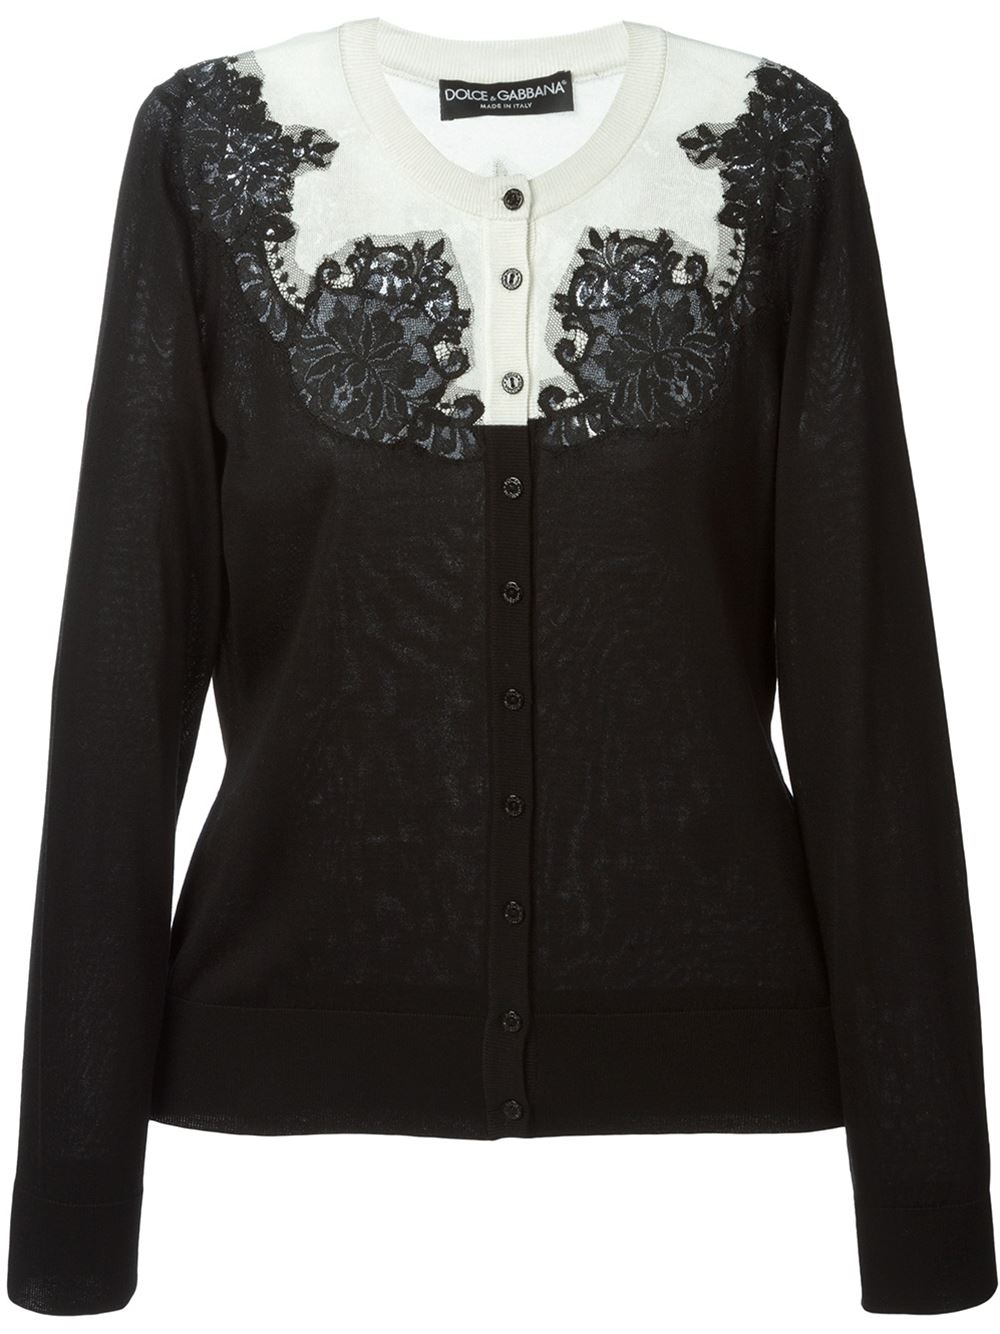 Dolce & gabbana Lace-Detail Silk Cardigan in Black | Lyst